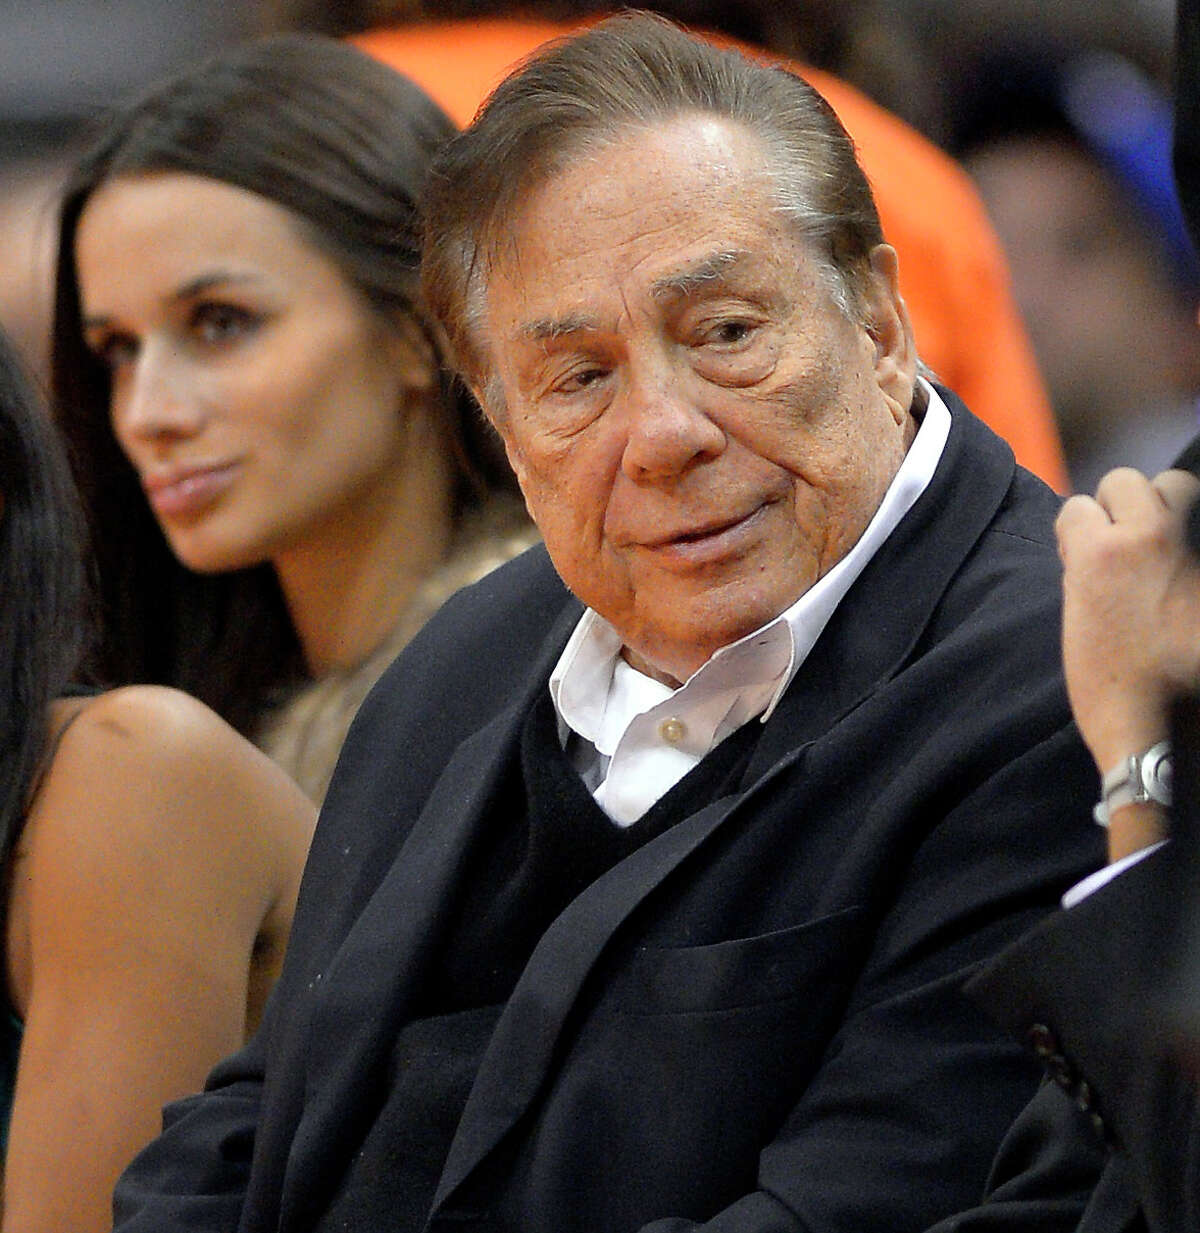 FILE - In this Oct. 25, 2013, file photo, Los Angeles Clippers owner Donald Sterling attends a Clippers game against the Sacramento Kings in Los Angeles. With the potentially record-breaking $2 billion sale of the Los Angeles Clippers hanging in the balance, a trial beginning Monday, July 7, 2014 will focus on whether Donald Sterling's estranged wife had the authority under terms of a family trust to unilaterally negotiate the deal. (AP Photo/Mark J. Terrill, File) ORG XMIT: NY157